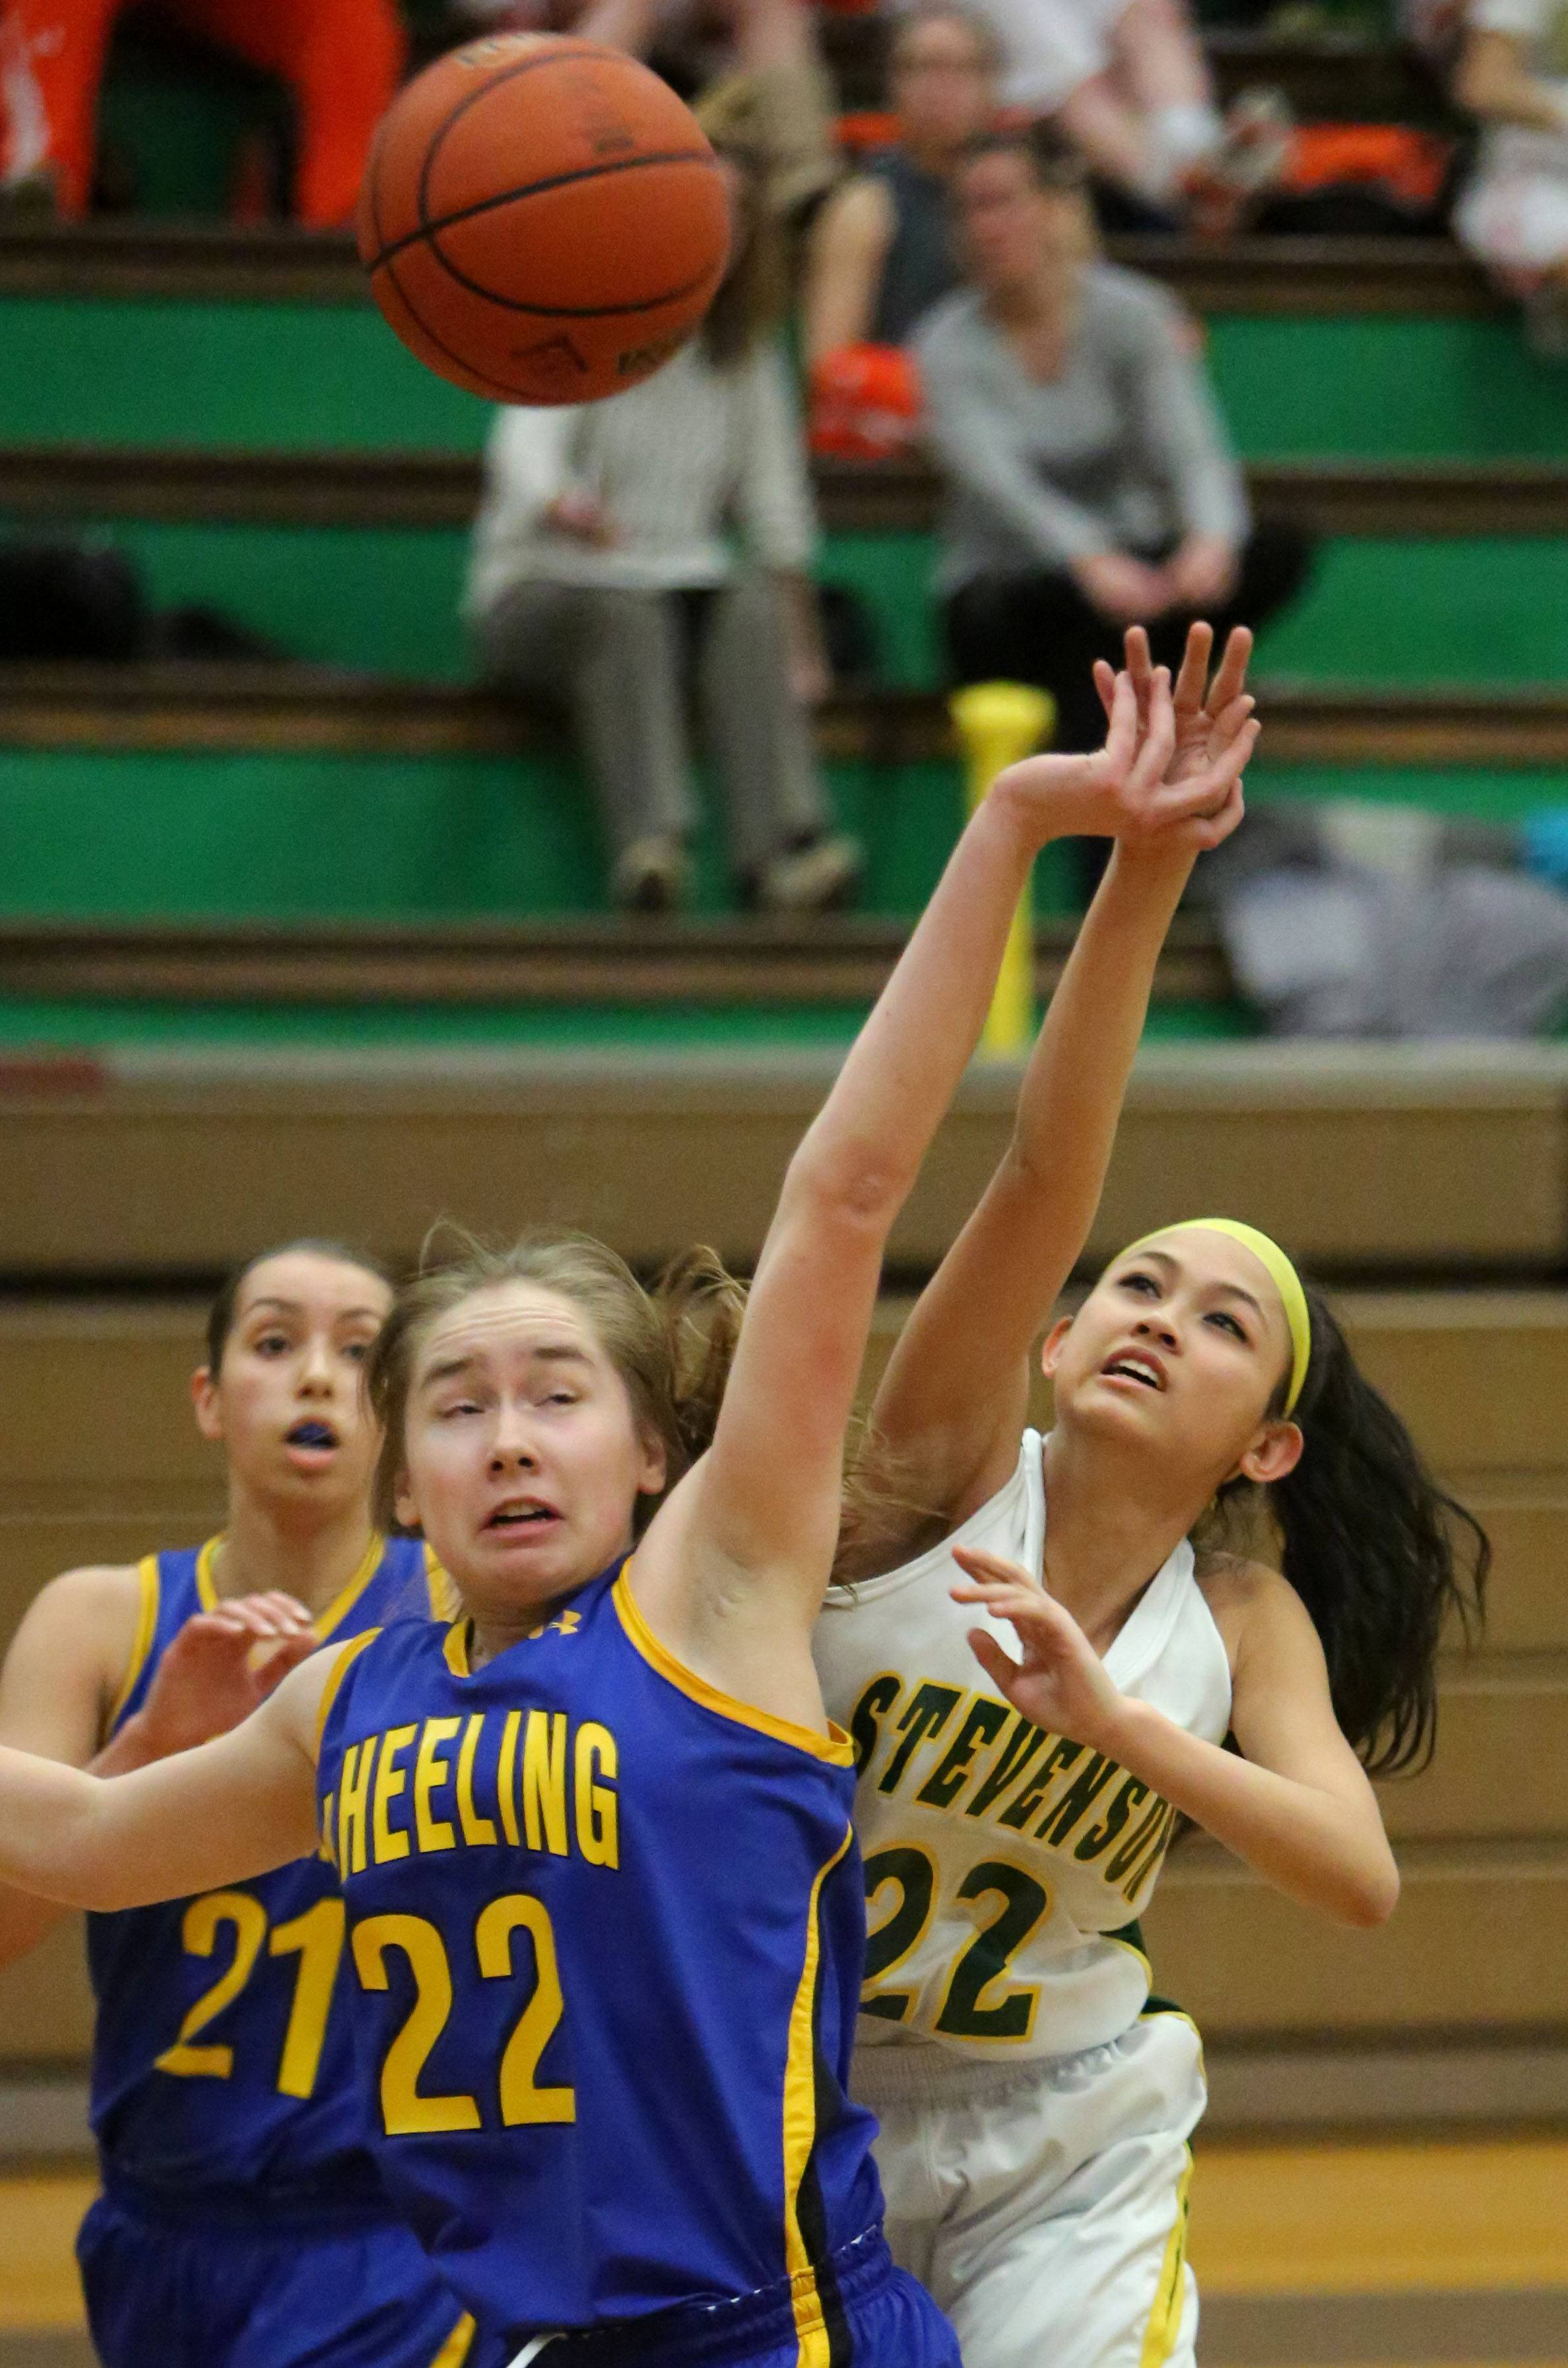 Wheeling's Hailey Dammeier, left, and Stevenson's Janine Fajardo stretch for a rebound during Class 4A regional semifinal play at Waukegan on Wednesday.